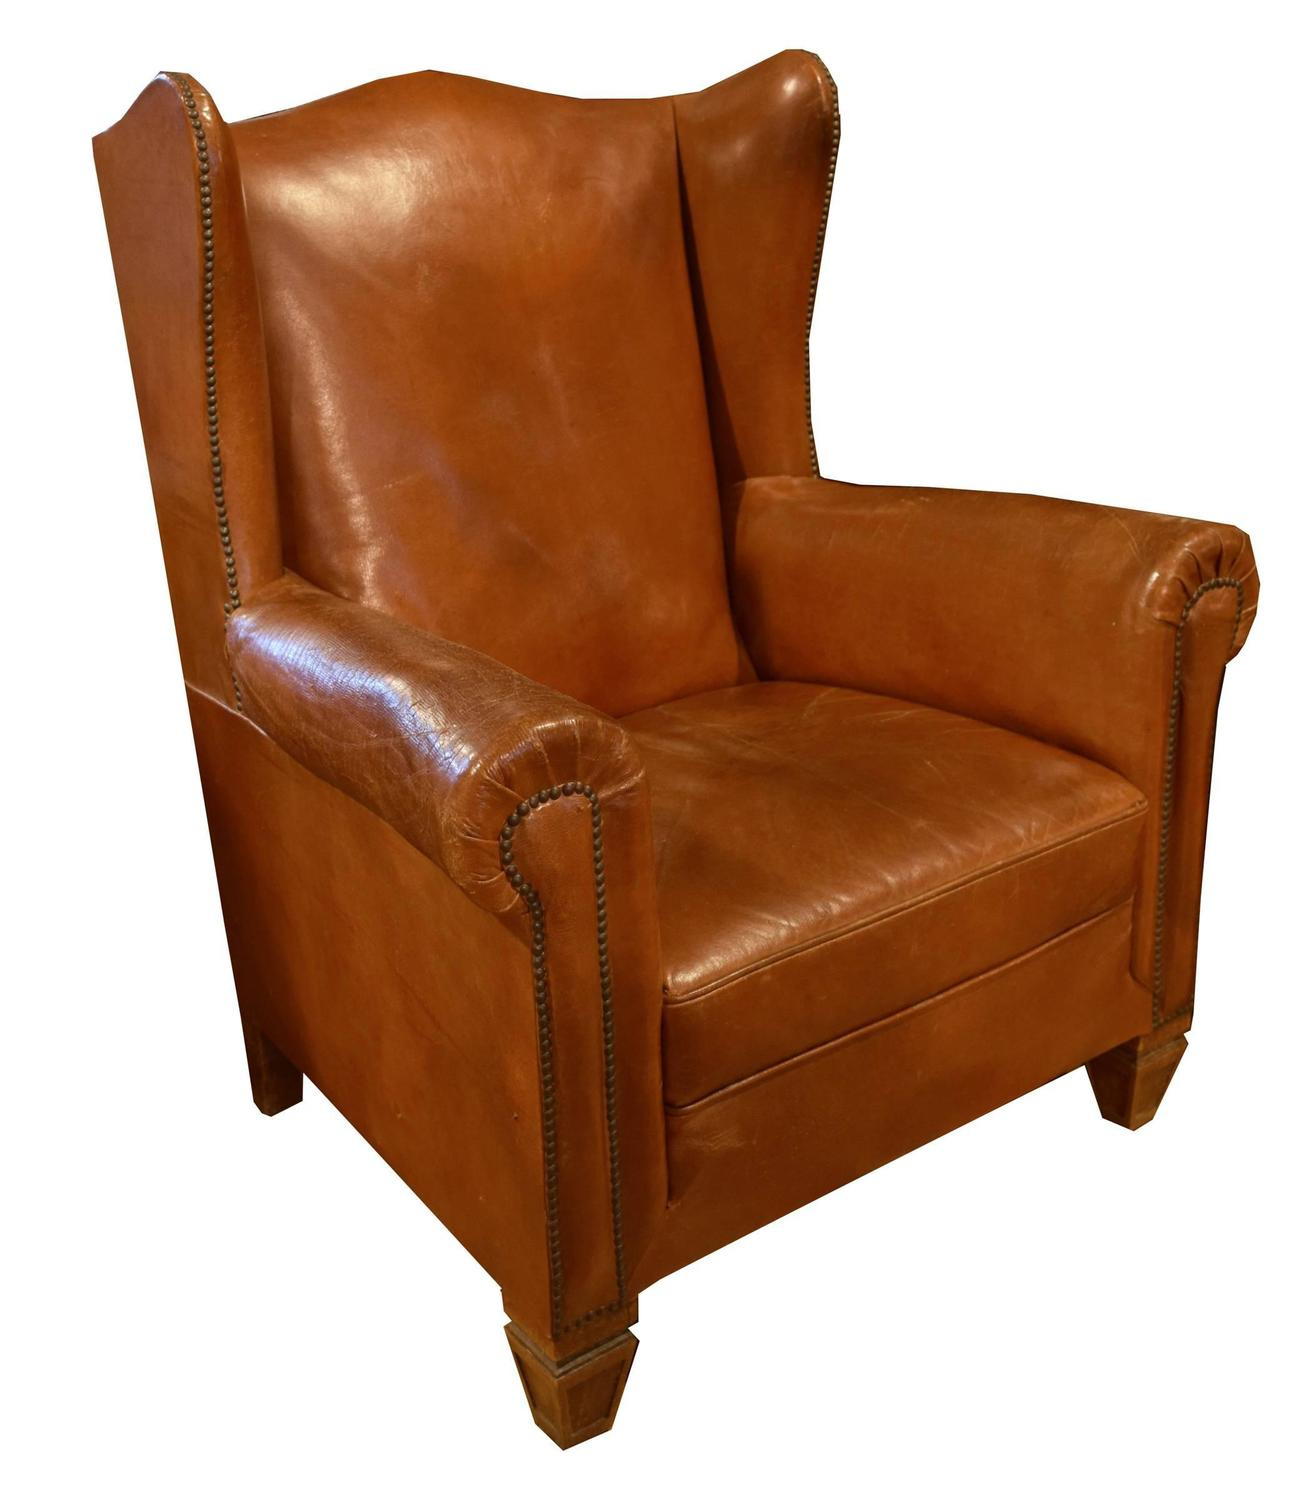 Z Chair For Sale Italian Leather Wingback Chair For Sale At 1stdibs